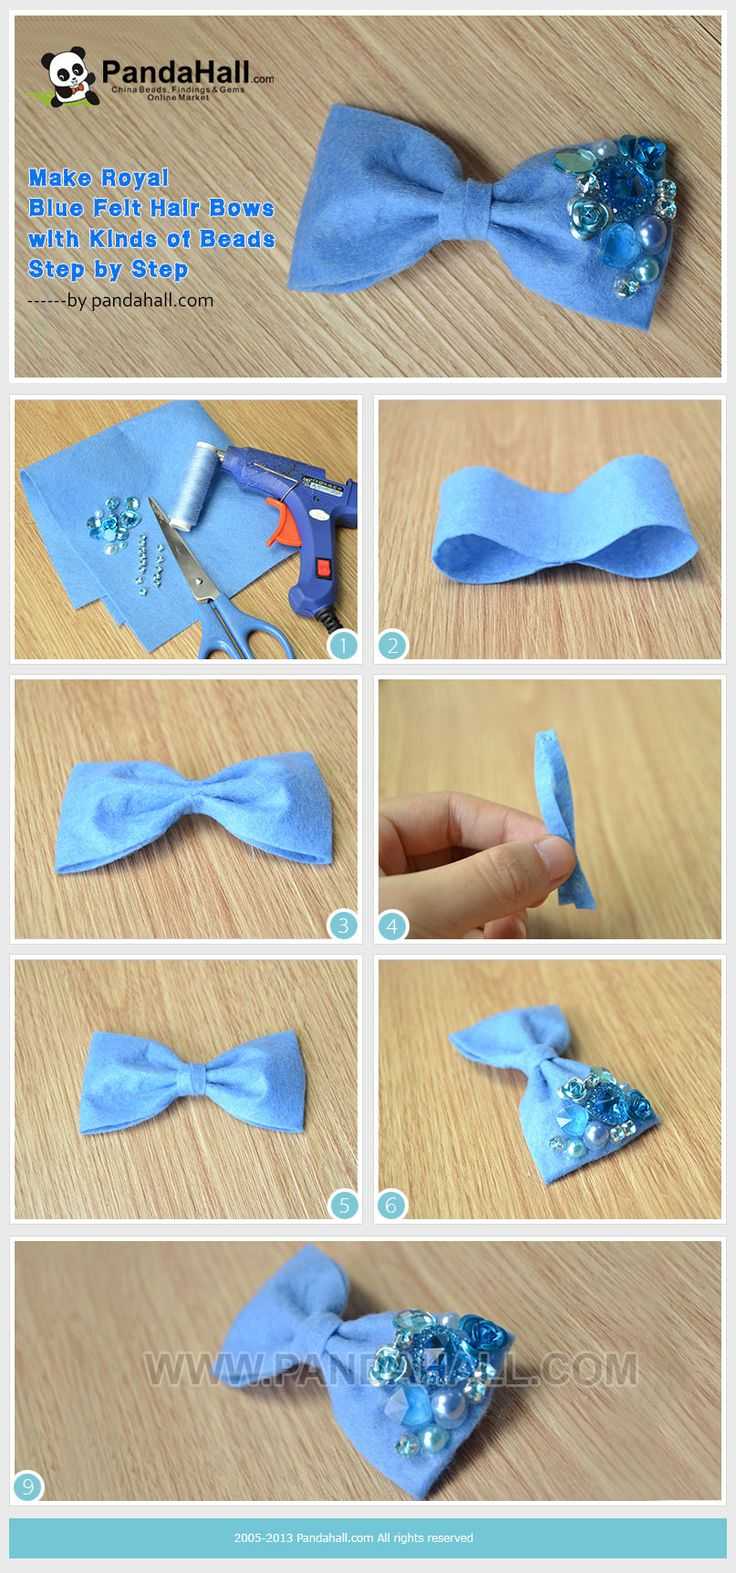 Diy hair accessories for baby girl - 17 Best Ideas About Hair Bows On Pinterest Hair Bow Tutorial Bow Tutorial And Ribbon Bows